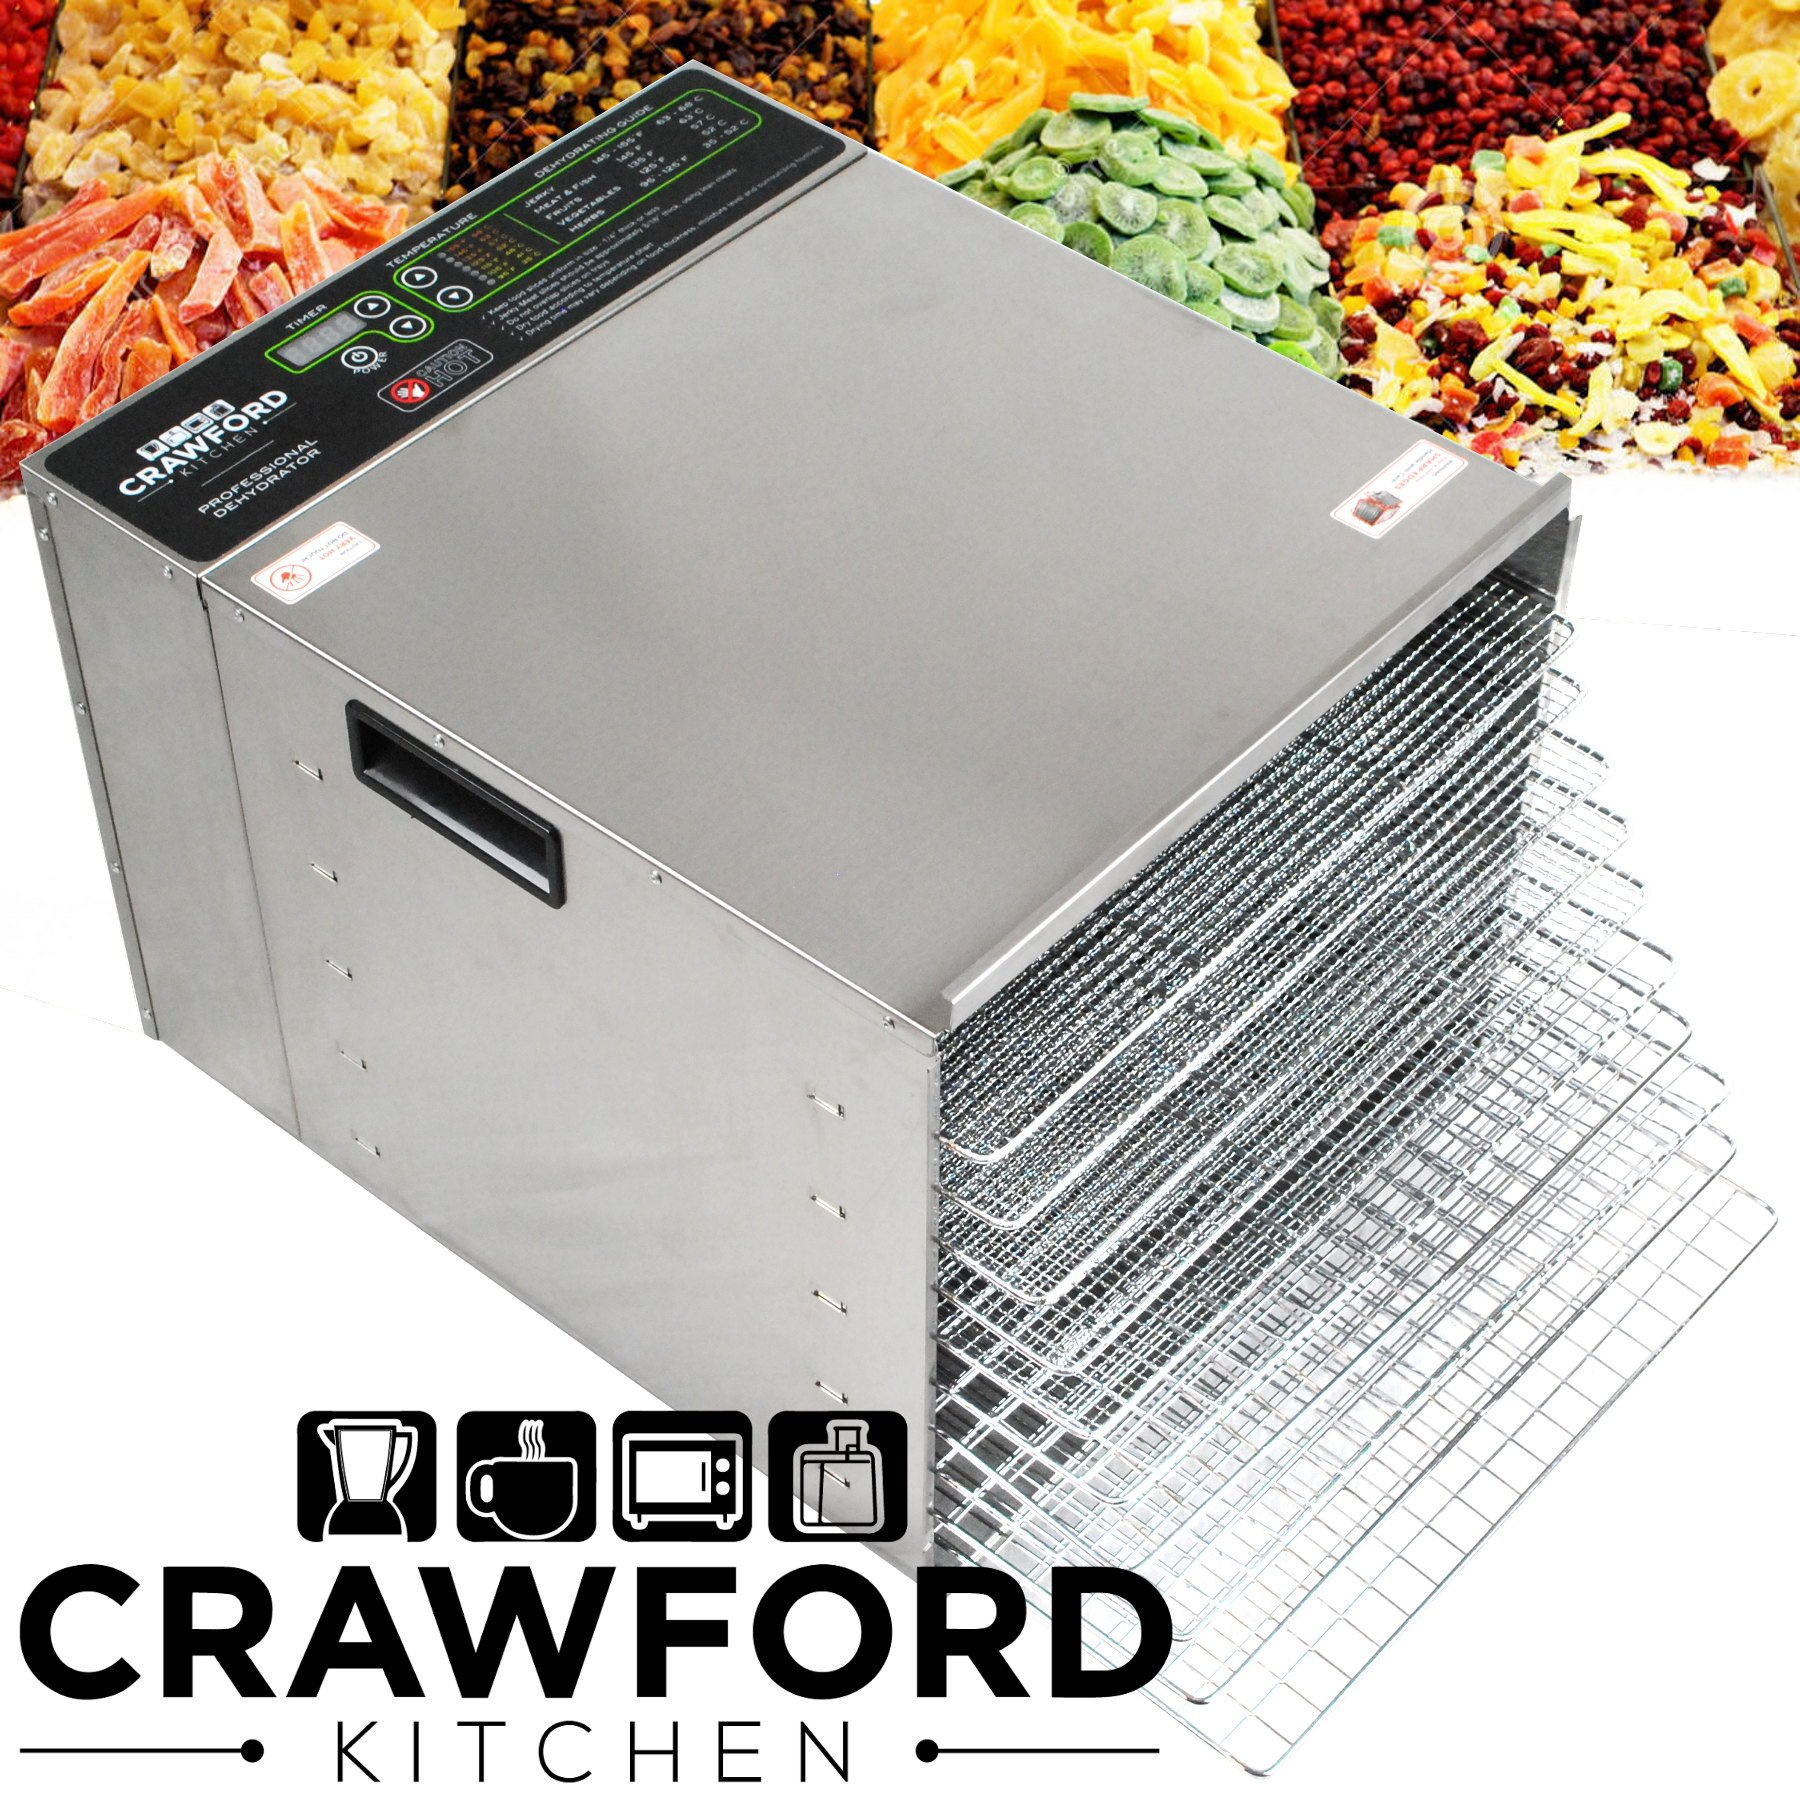 Crawford Kitchen Commercial Food Dehydrator | Stainless Steel Easy To Clean Body | Pro Quality Dehydrated Raw Food & Jerky Maker | 1000W Ultra High Effieciency Design